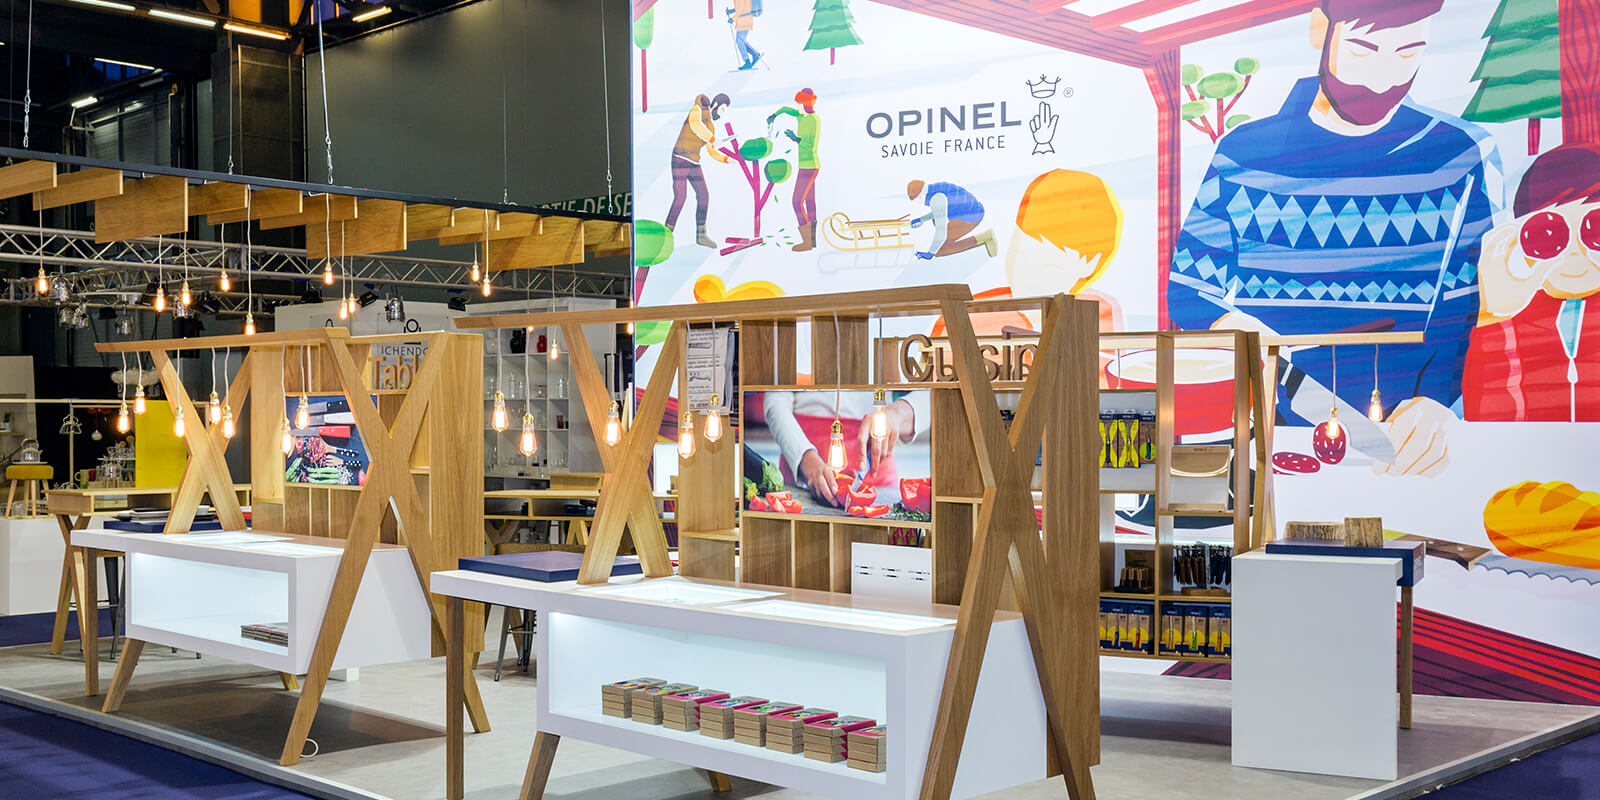 expace-stand-showroom-event-solutions-mobiles-banners-projets_0022_stand – 63m2 – Opinel – Maison et Objet – Paris – jan